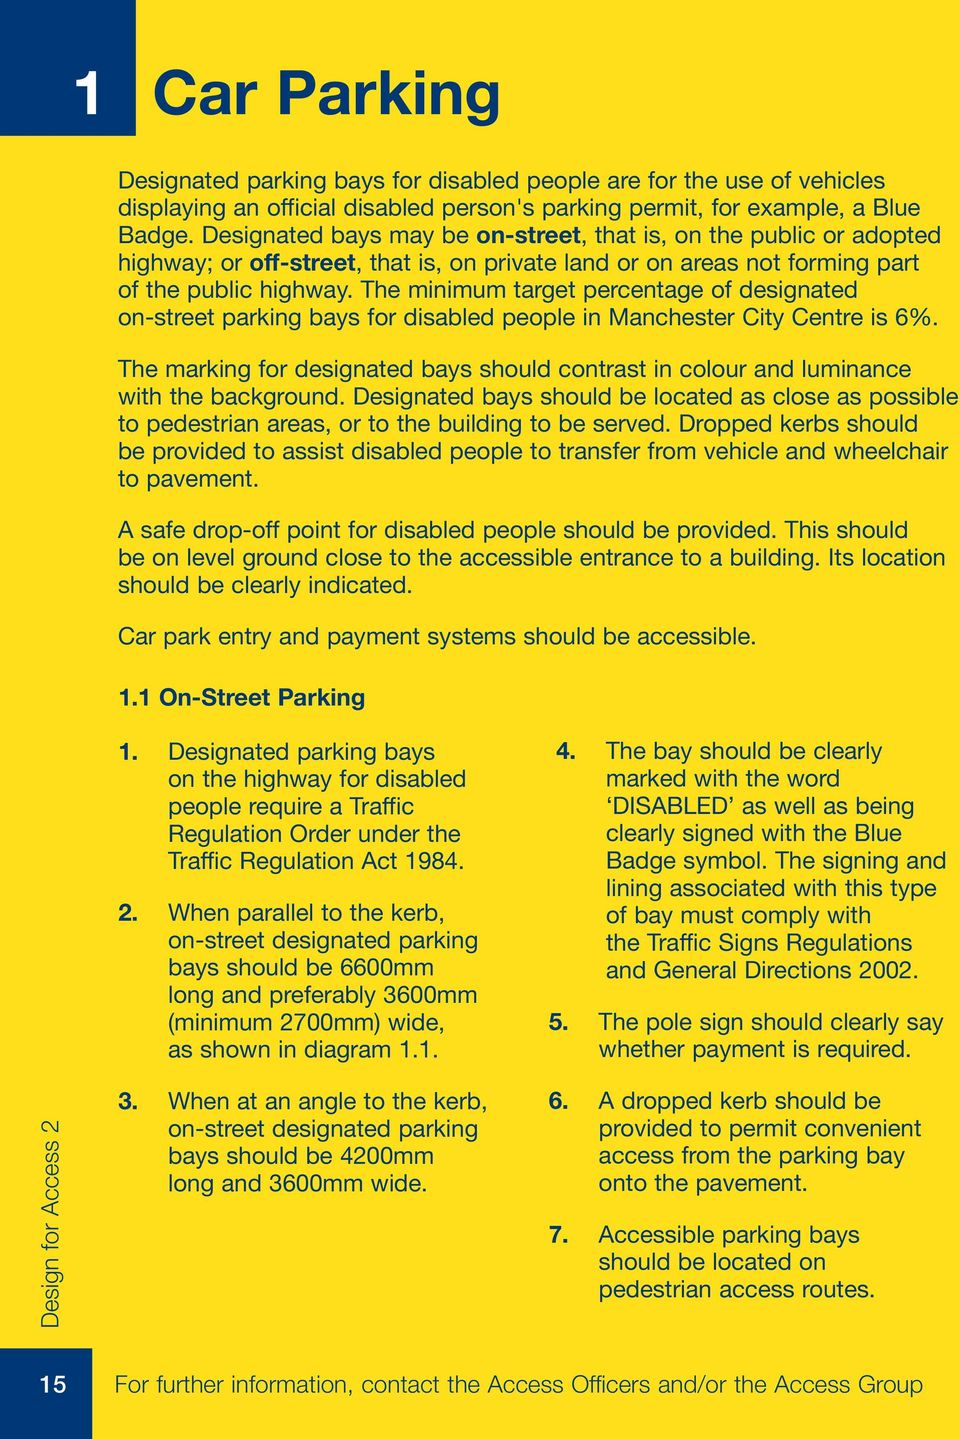 The minimum target percentage of designated on-street parking bays for disabled people in Manchester City Centre is 6%.